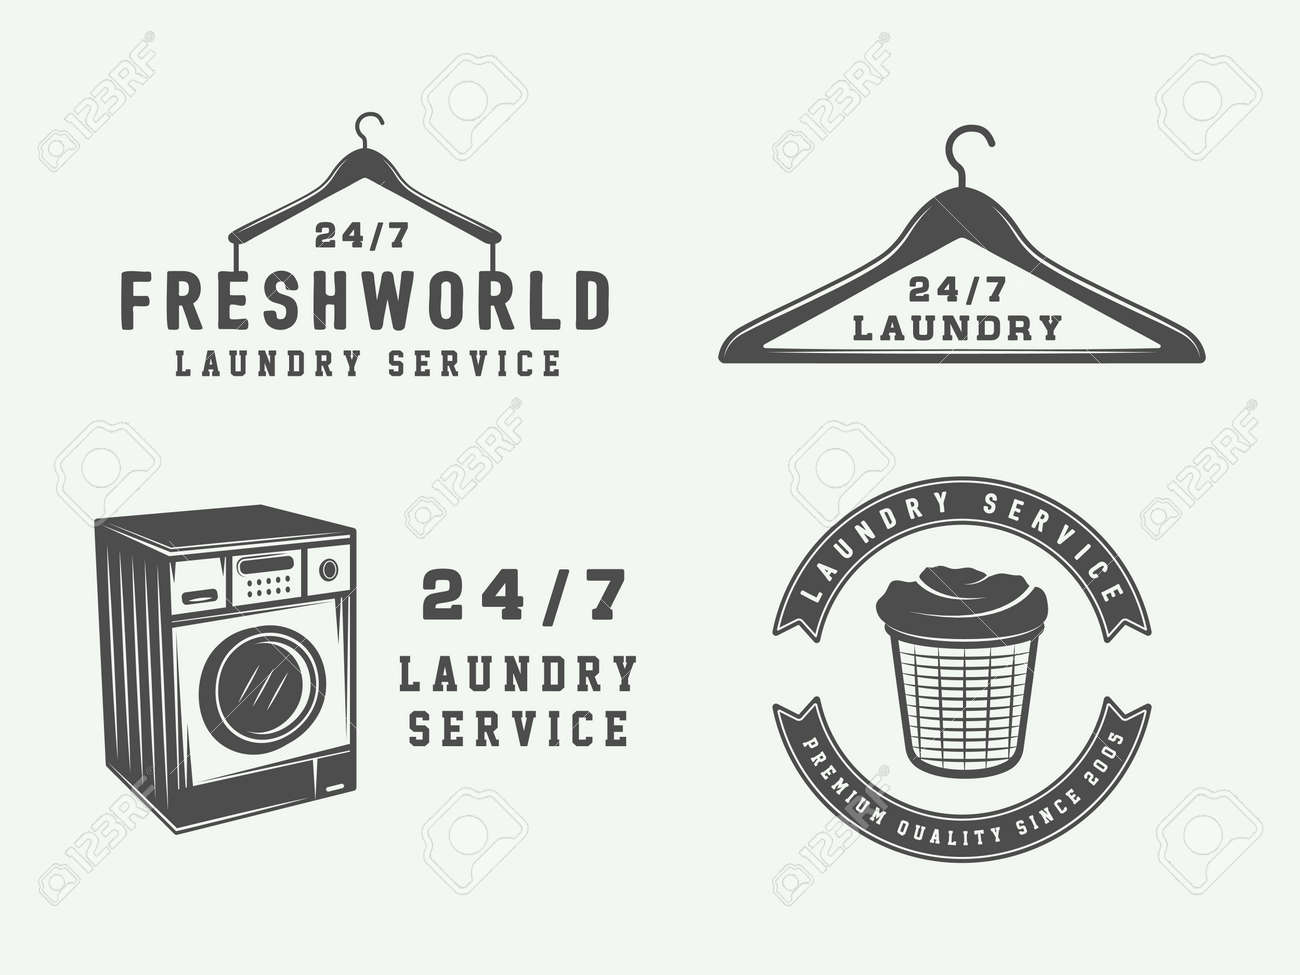 Set Of Vintage Laundry Cleaning Or Iron Service Logos Emblems Badges And Design